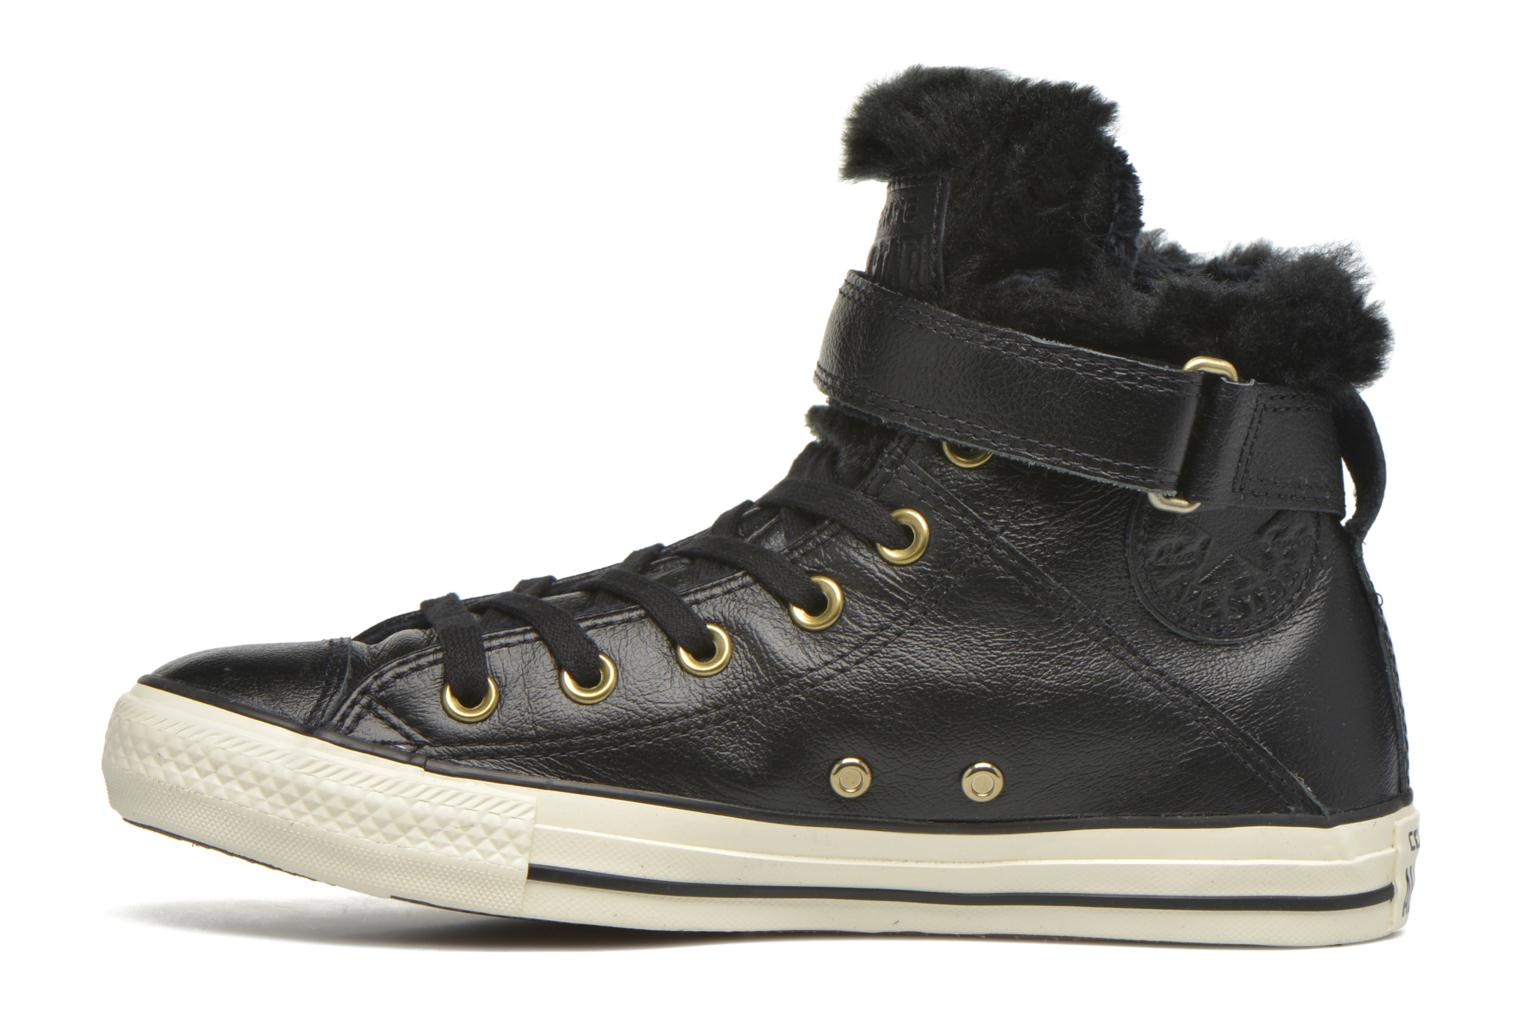 Chuck Taylor All Star Brea Leather+Fur Hi Black-Black